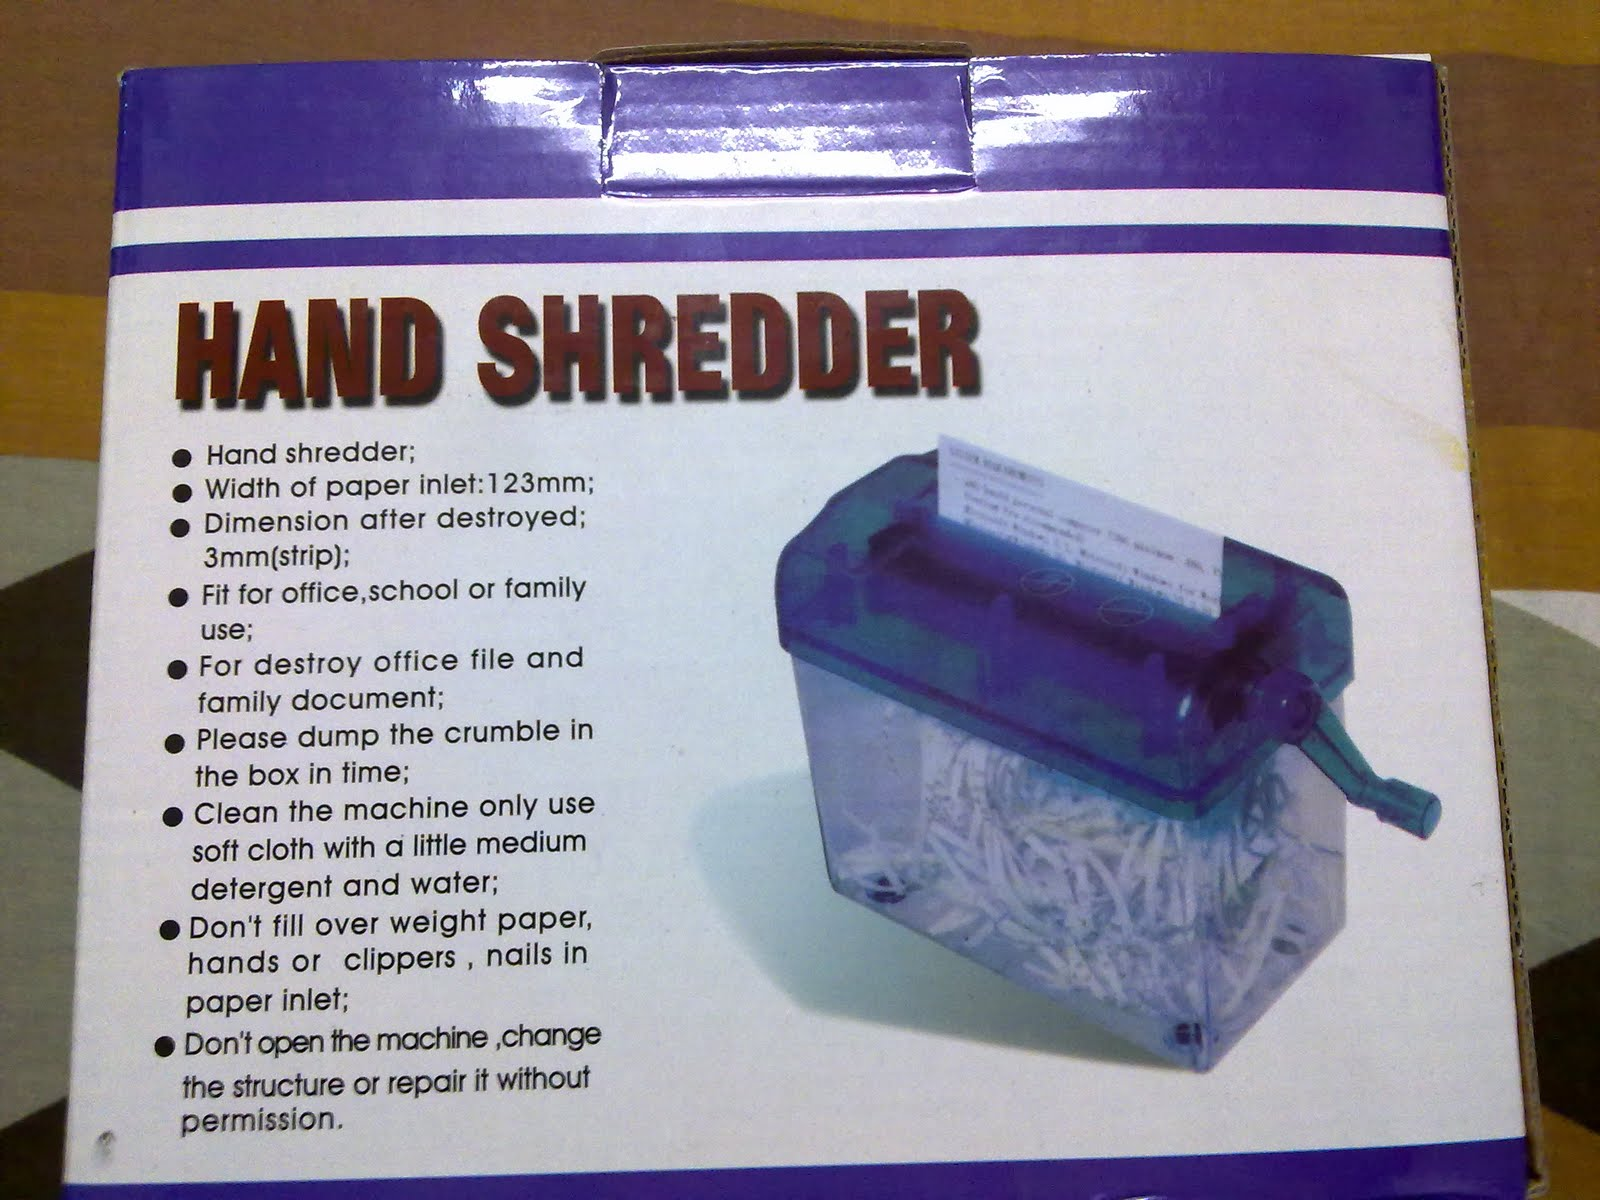 mini paper shredder for sale All you have to do is cut in half the a4 size paper and place half the paper into the paper shredder, then slowly shred the paper by hand i only use 80gsm you cannot use anything thicker than that otherwise it will ruin your mini paper shredder please let me know how much it costs and where to buy.